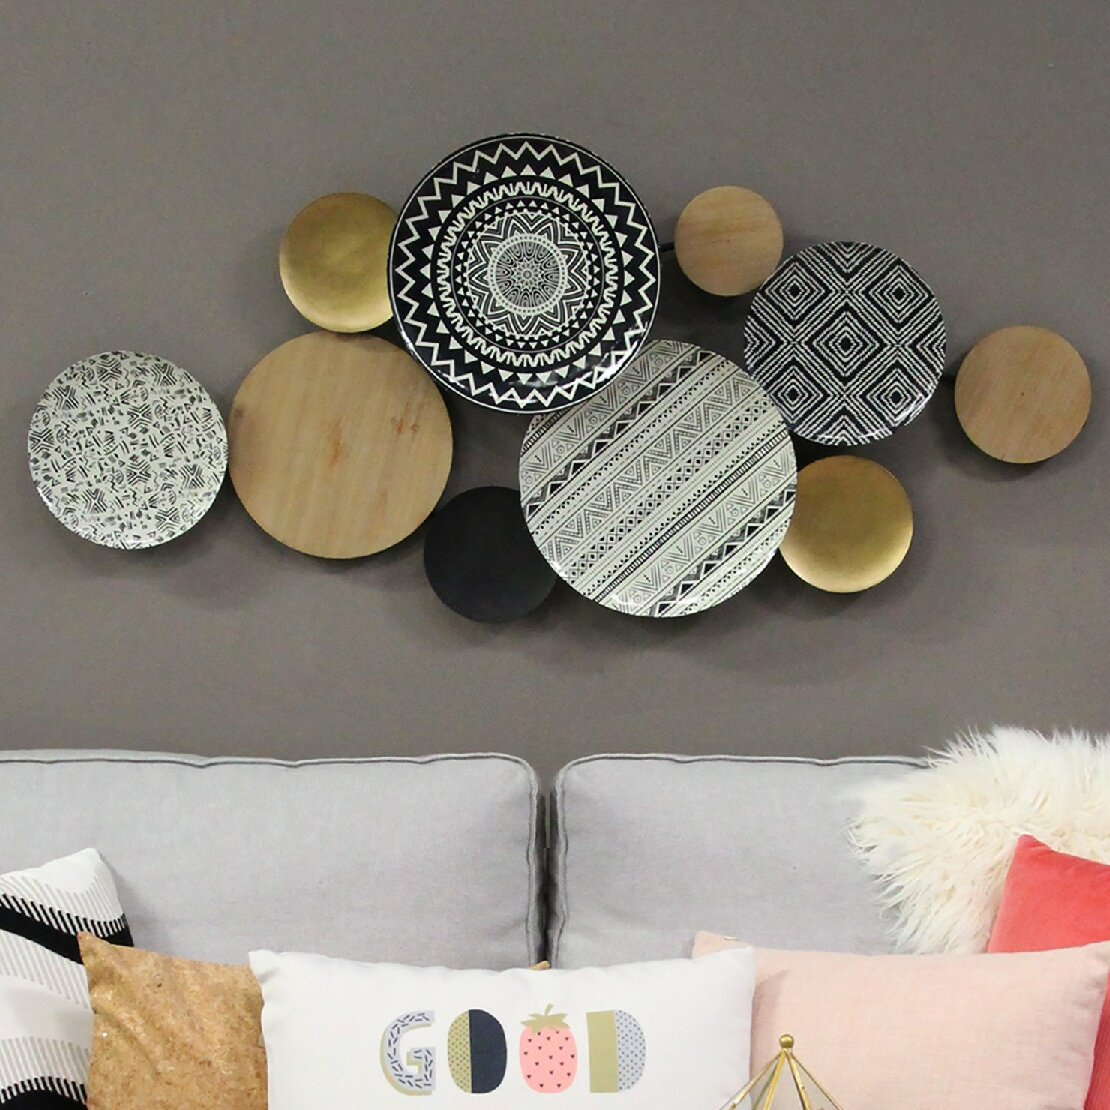 Tuscan Wall Decor Plates | Wayfair For Scattered Metal Italian Plates Wall Decor (View 7 of 30)